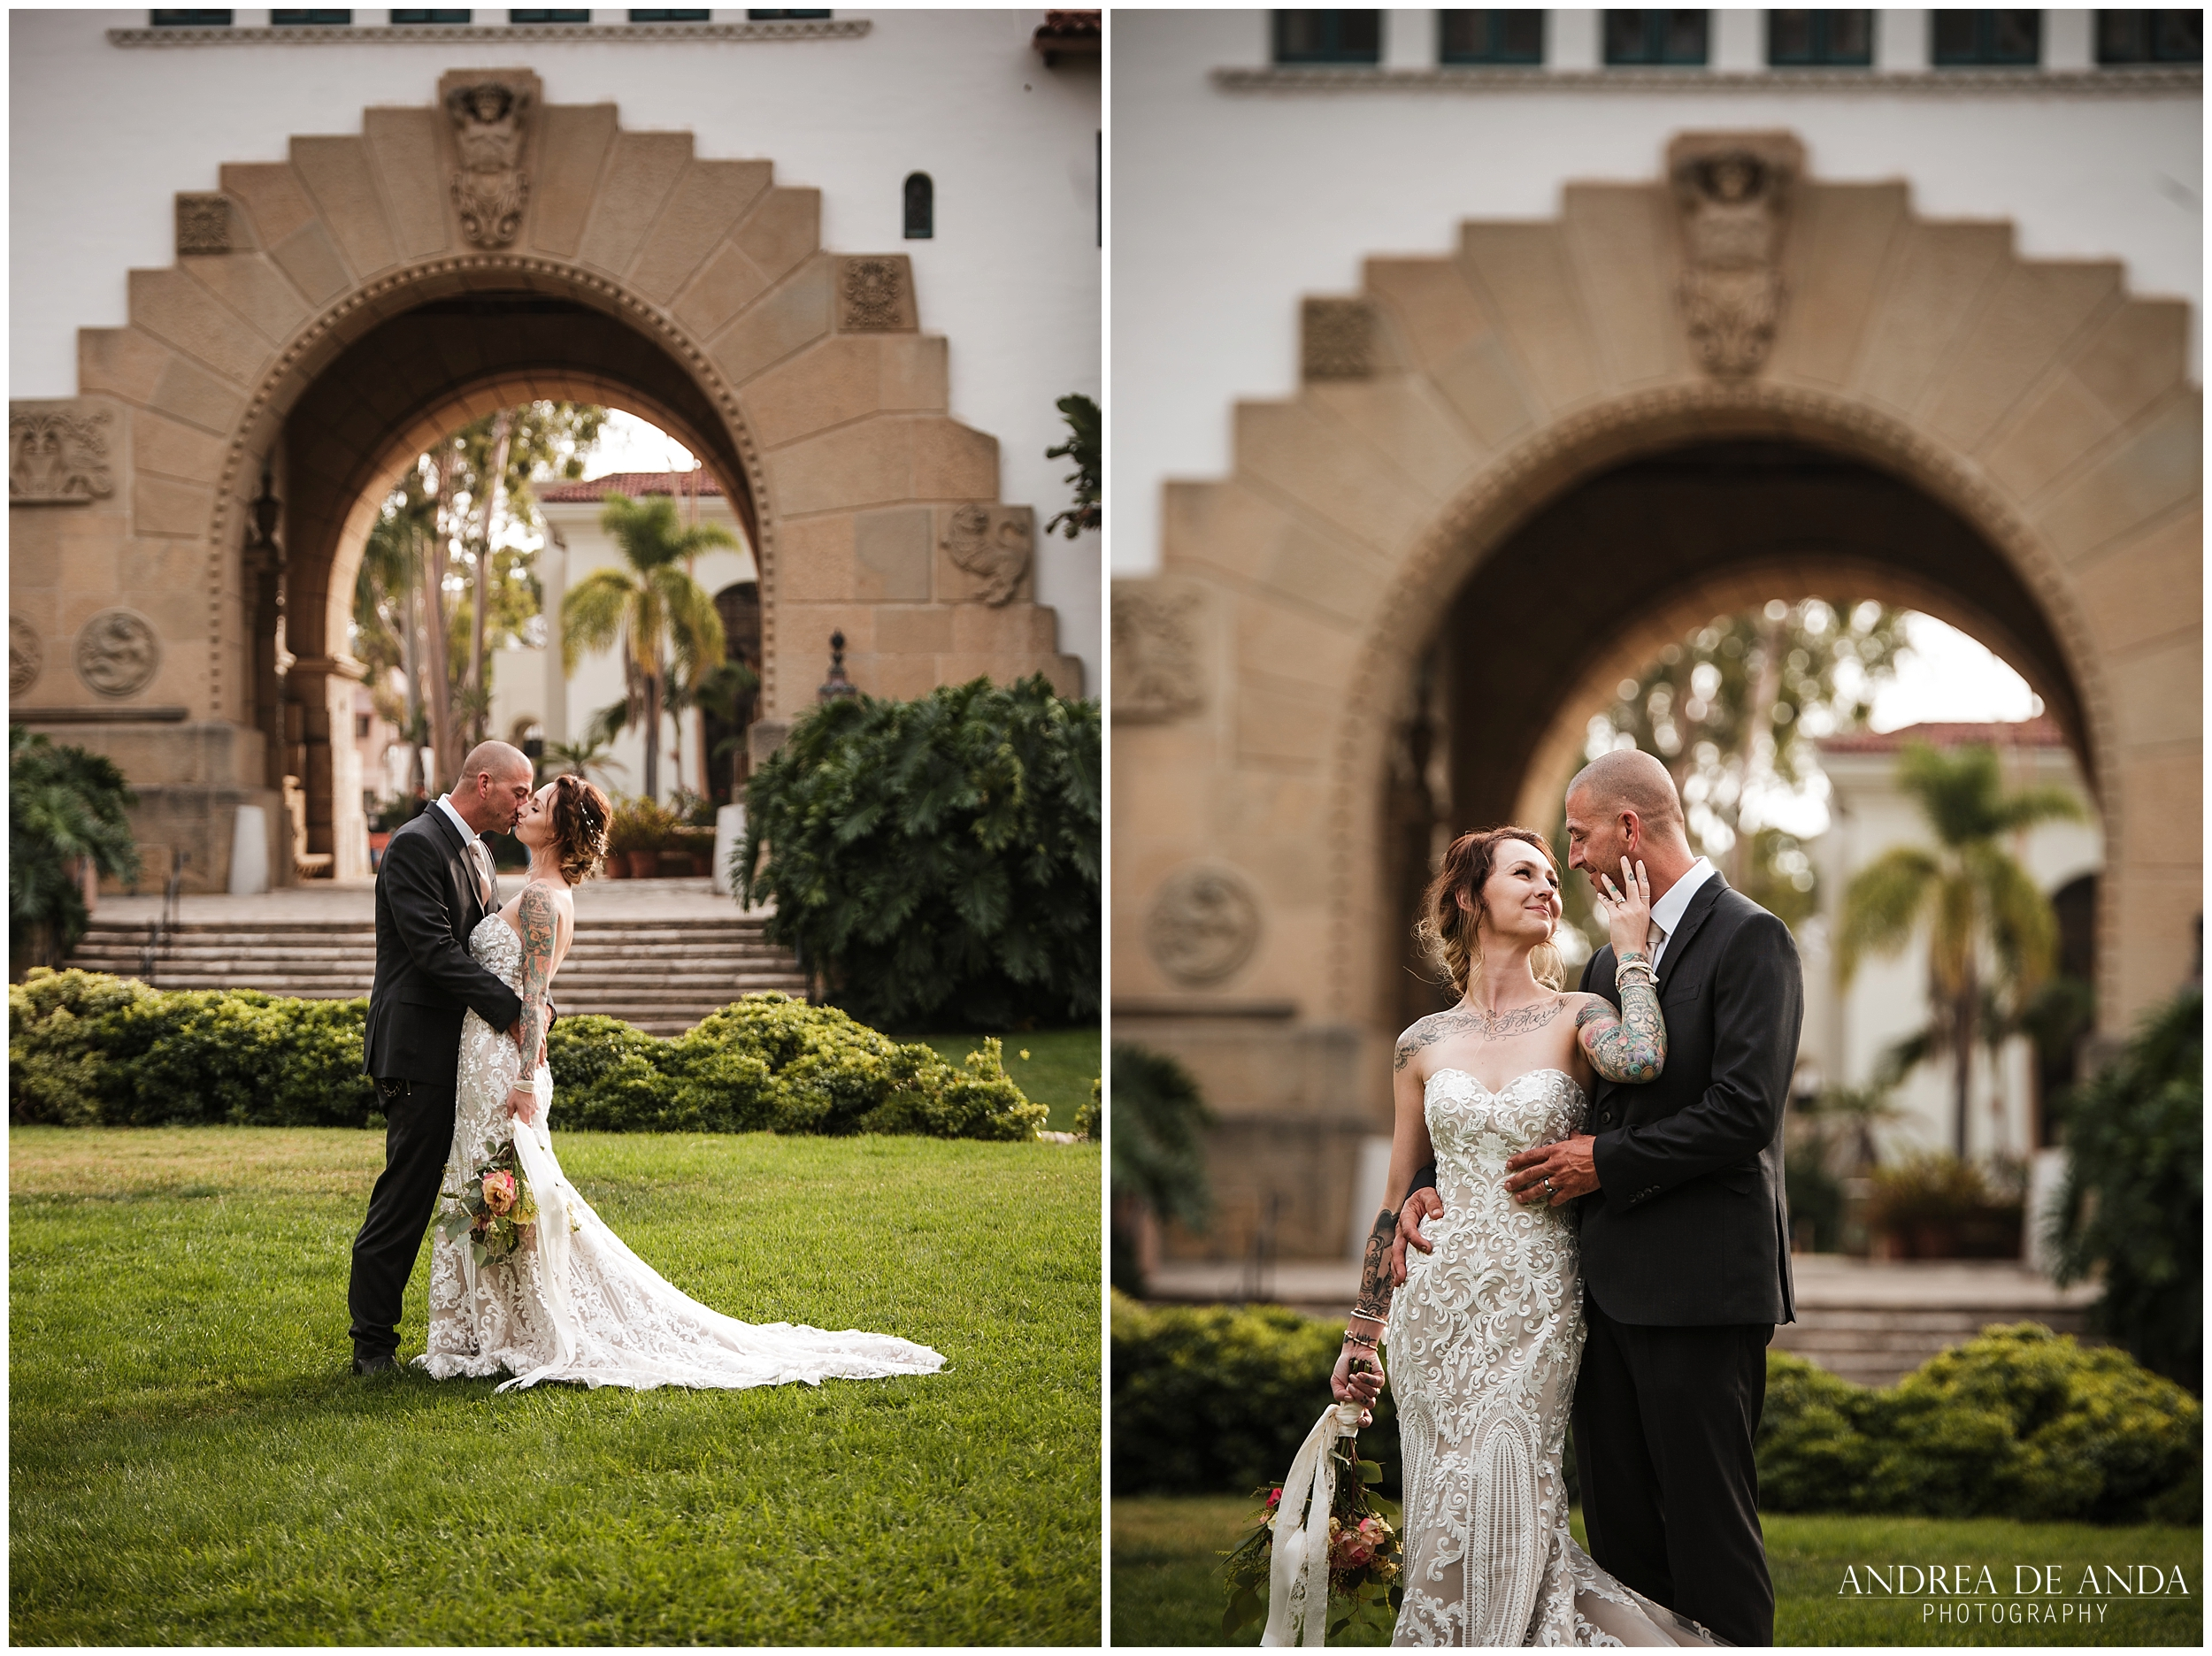 Santa Barbara Courthouse Elopement by Andrea de Anda Photography__0025.jpg